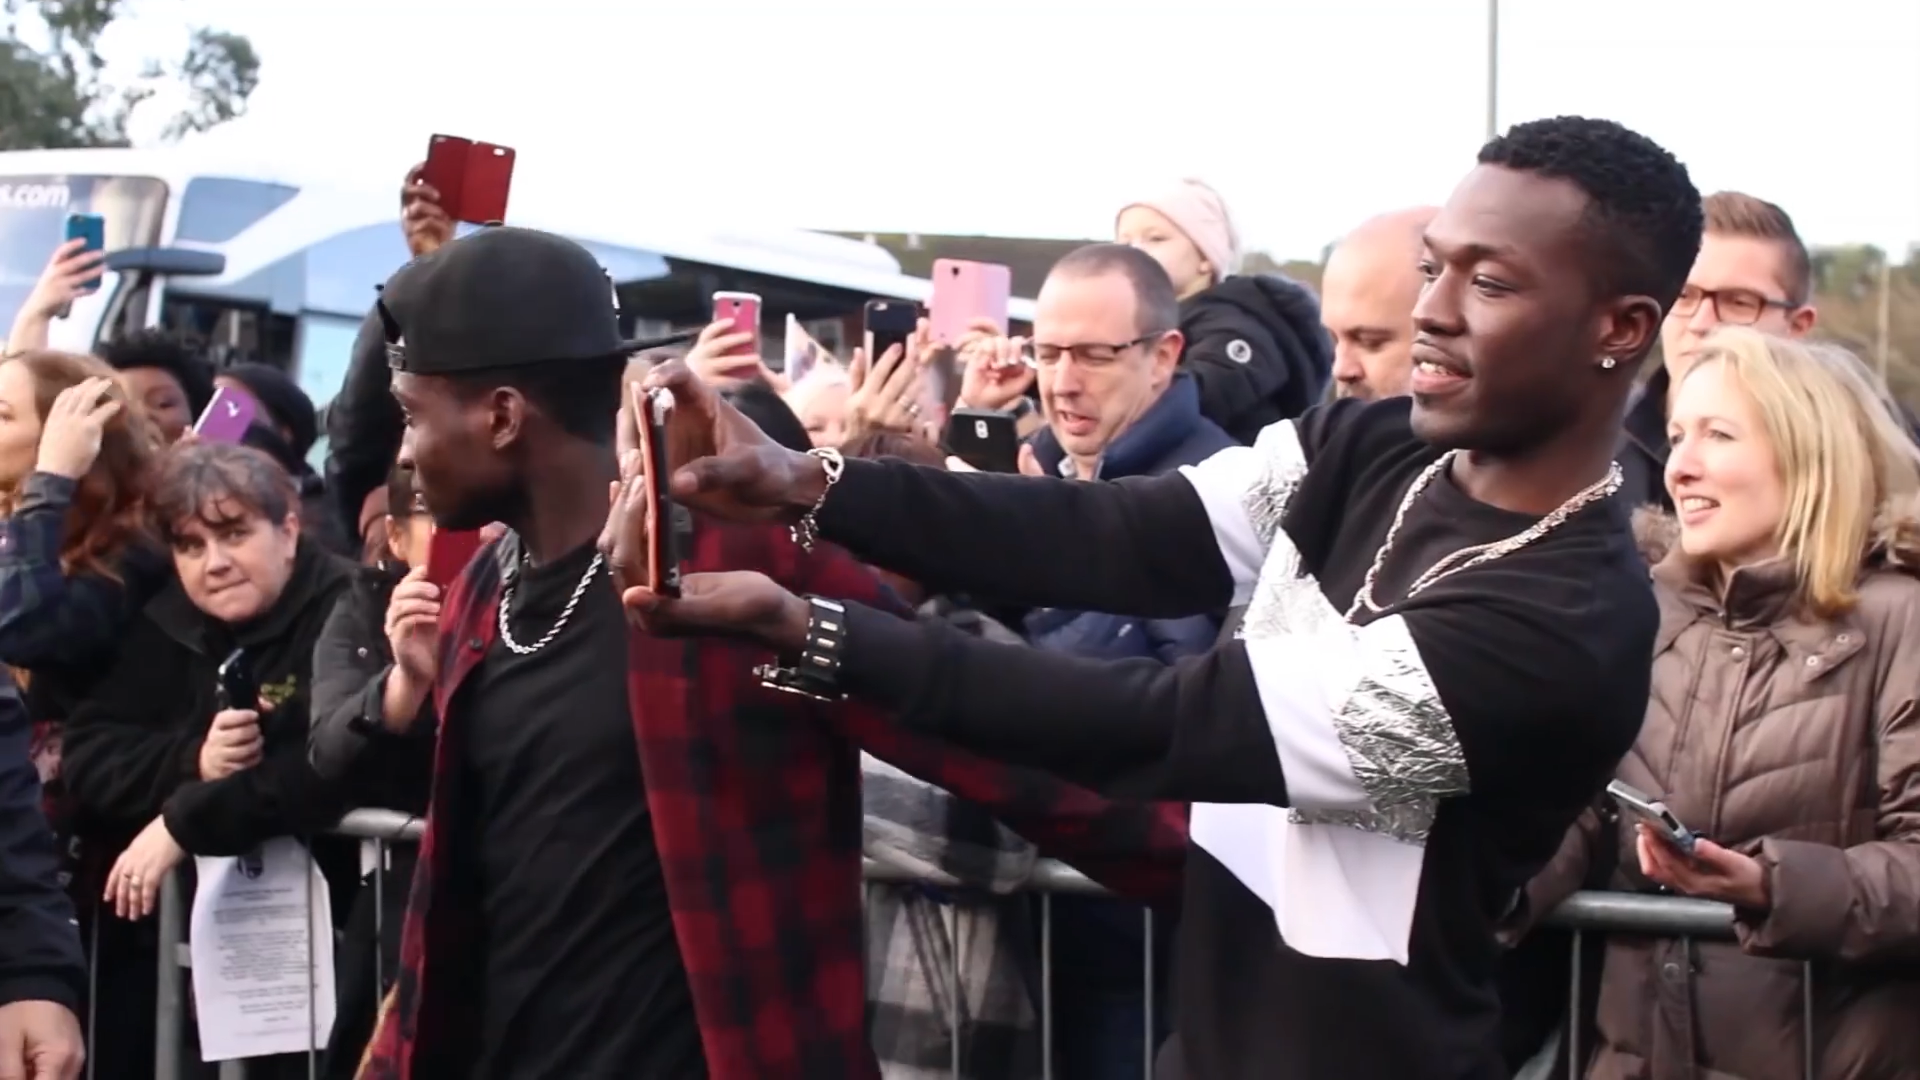 Reggie and Bollie from The XFactor take photographs with fans in Farnborough.